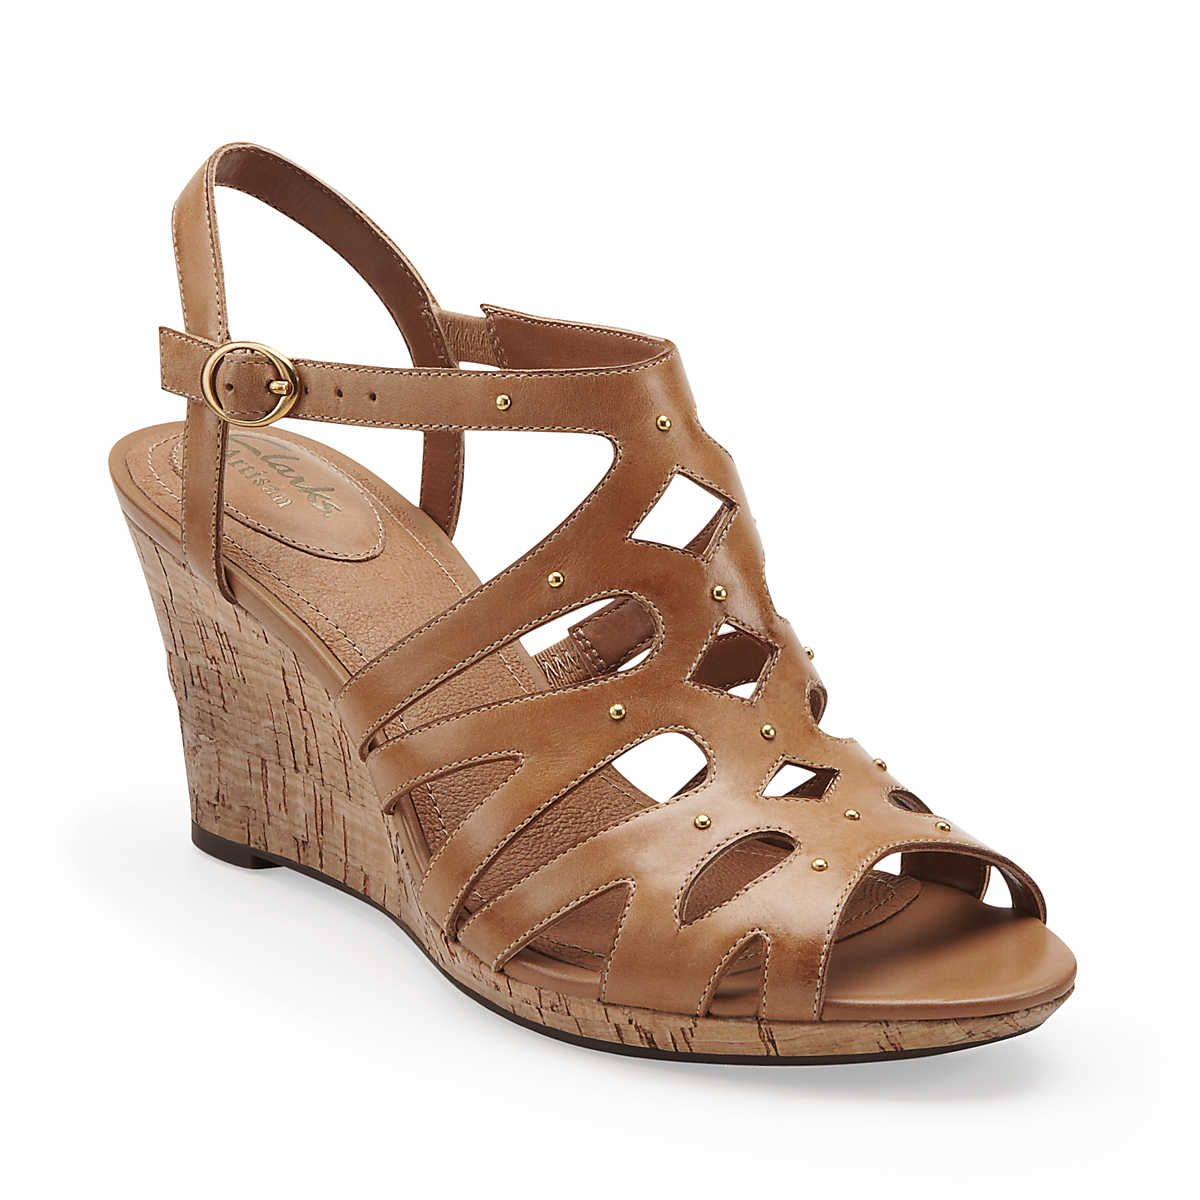 07c991283412 Fiddle String in Tan Leather - Womens Sandals from Clarks